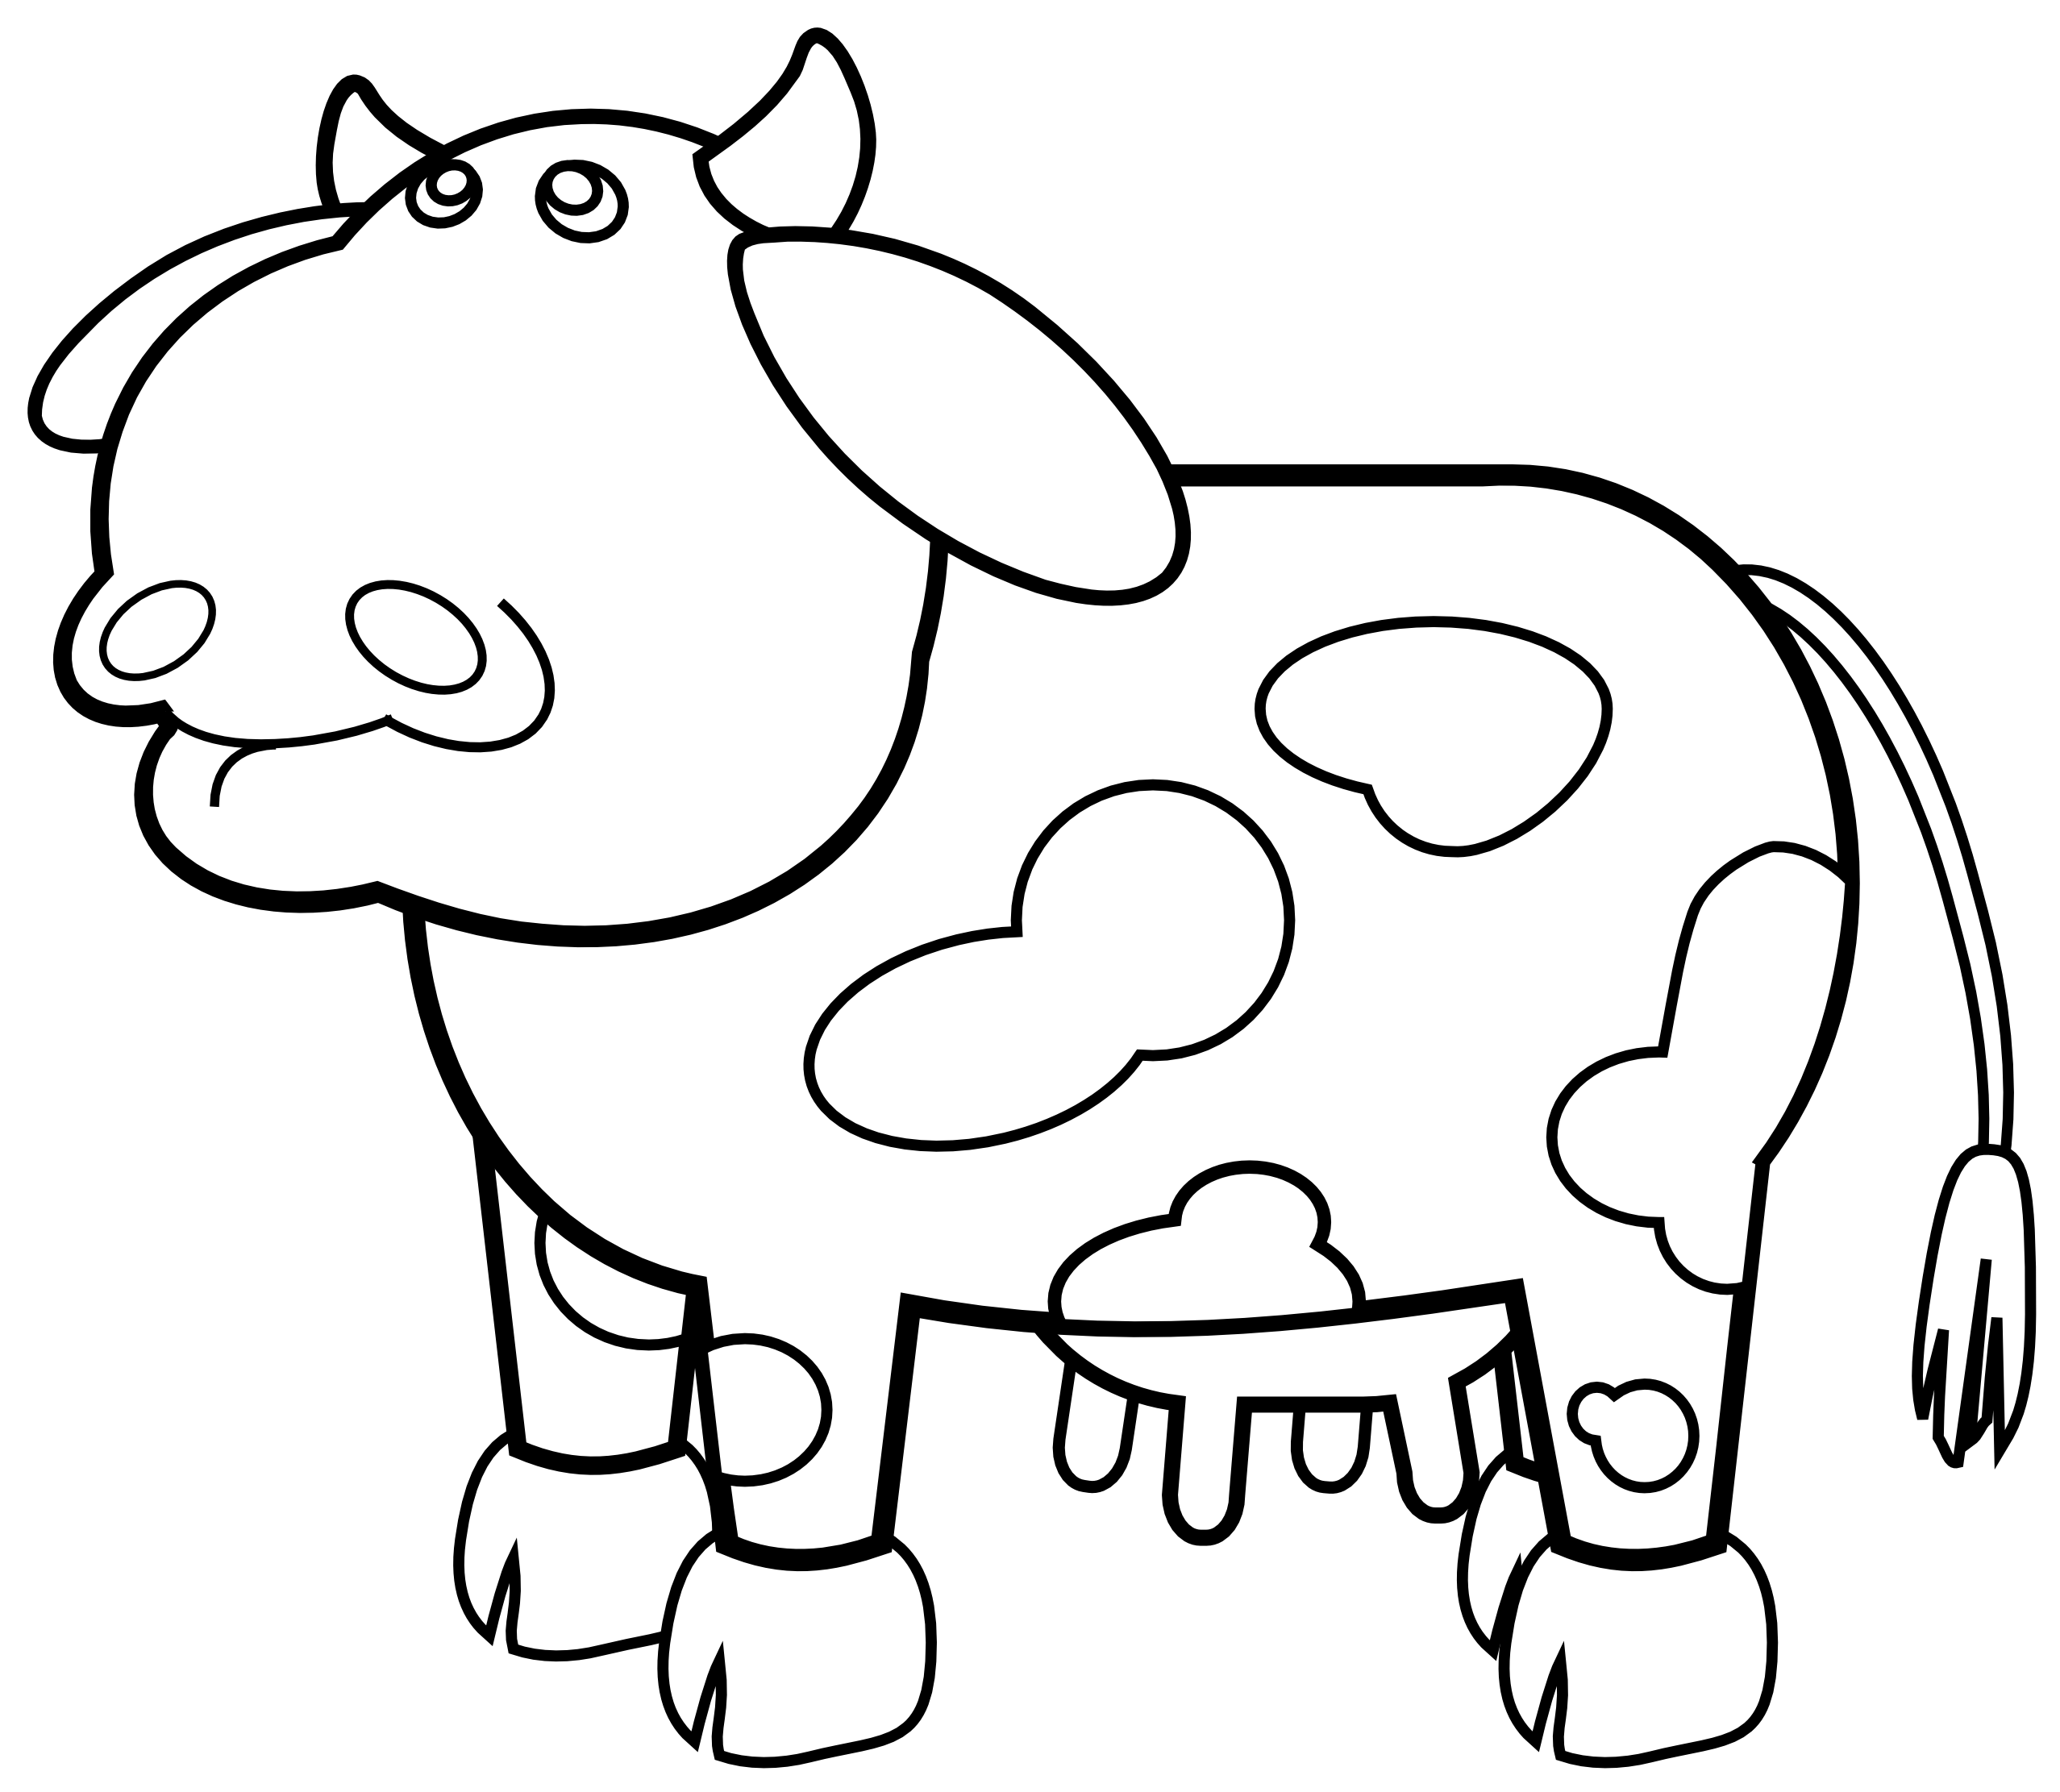 Cow Outline Black White Line Art Scalable Vector Graphics Svg